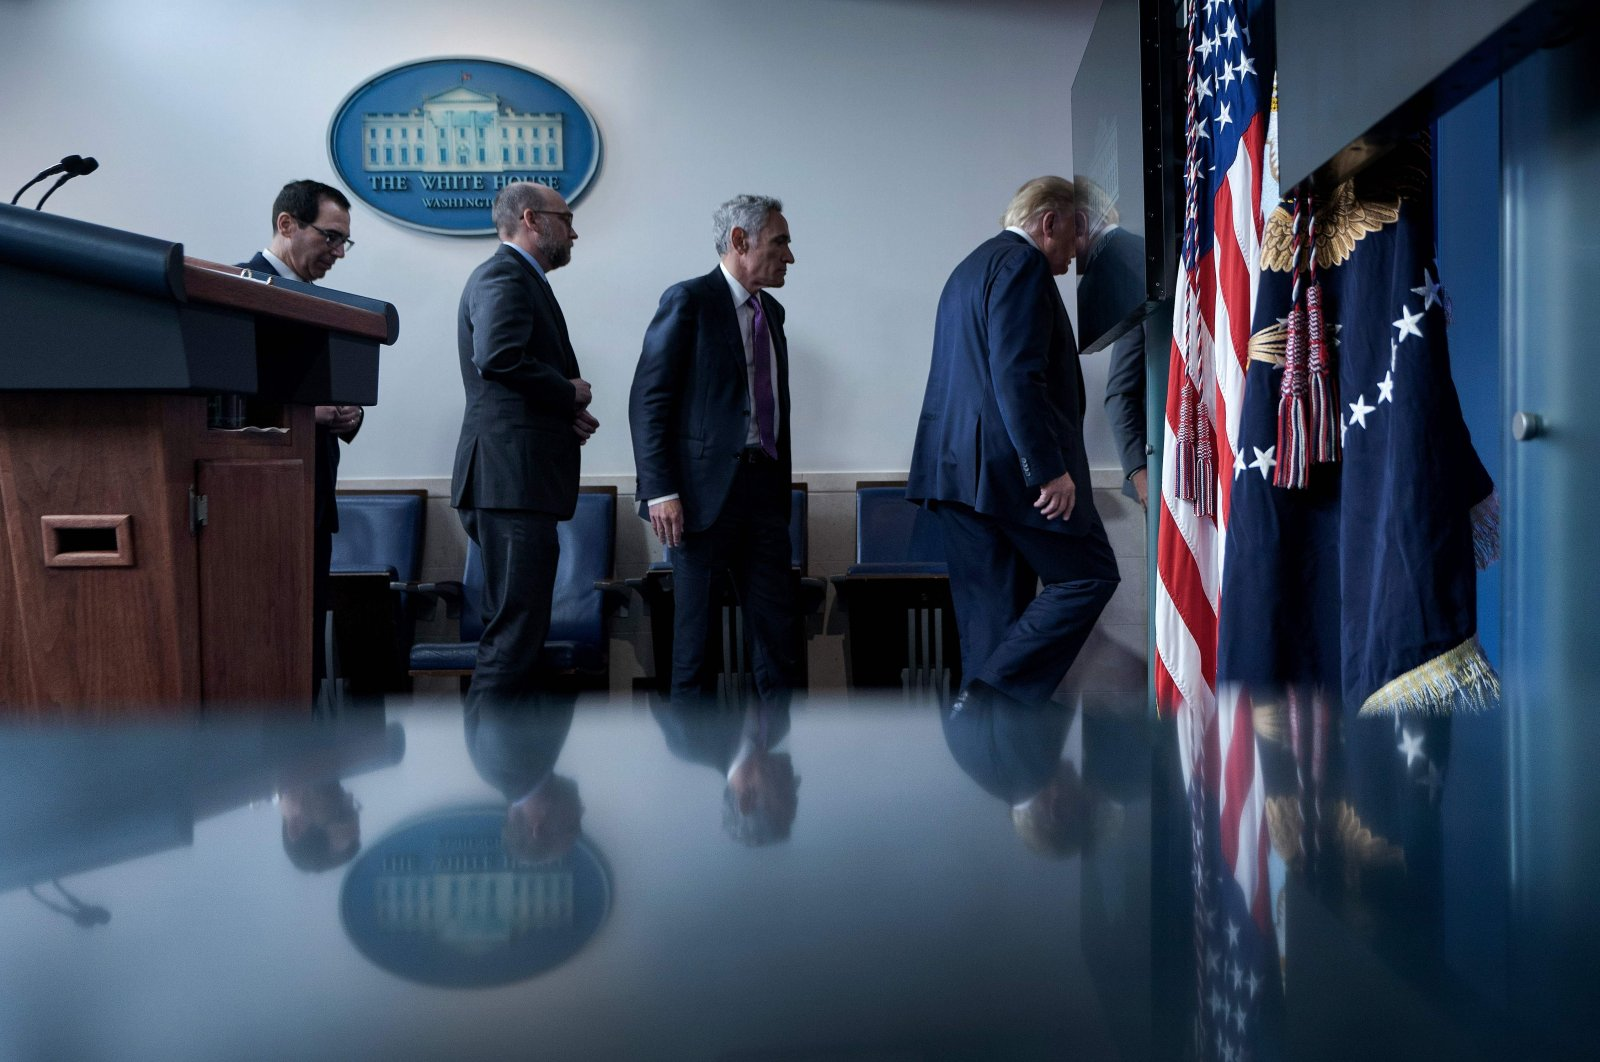 U.S. Secretary of the Treasury Steven Mnuchin, Director of the Office of Management and Budget Russell Vought, member of the coronavirus task force Scott Atlas, and U.S. President Donald Trump leave after a briefing at the White House, Aug. 10, 2020, in Washington, D.C. (AFP Photo)